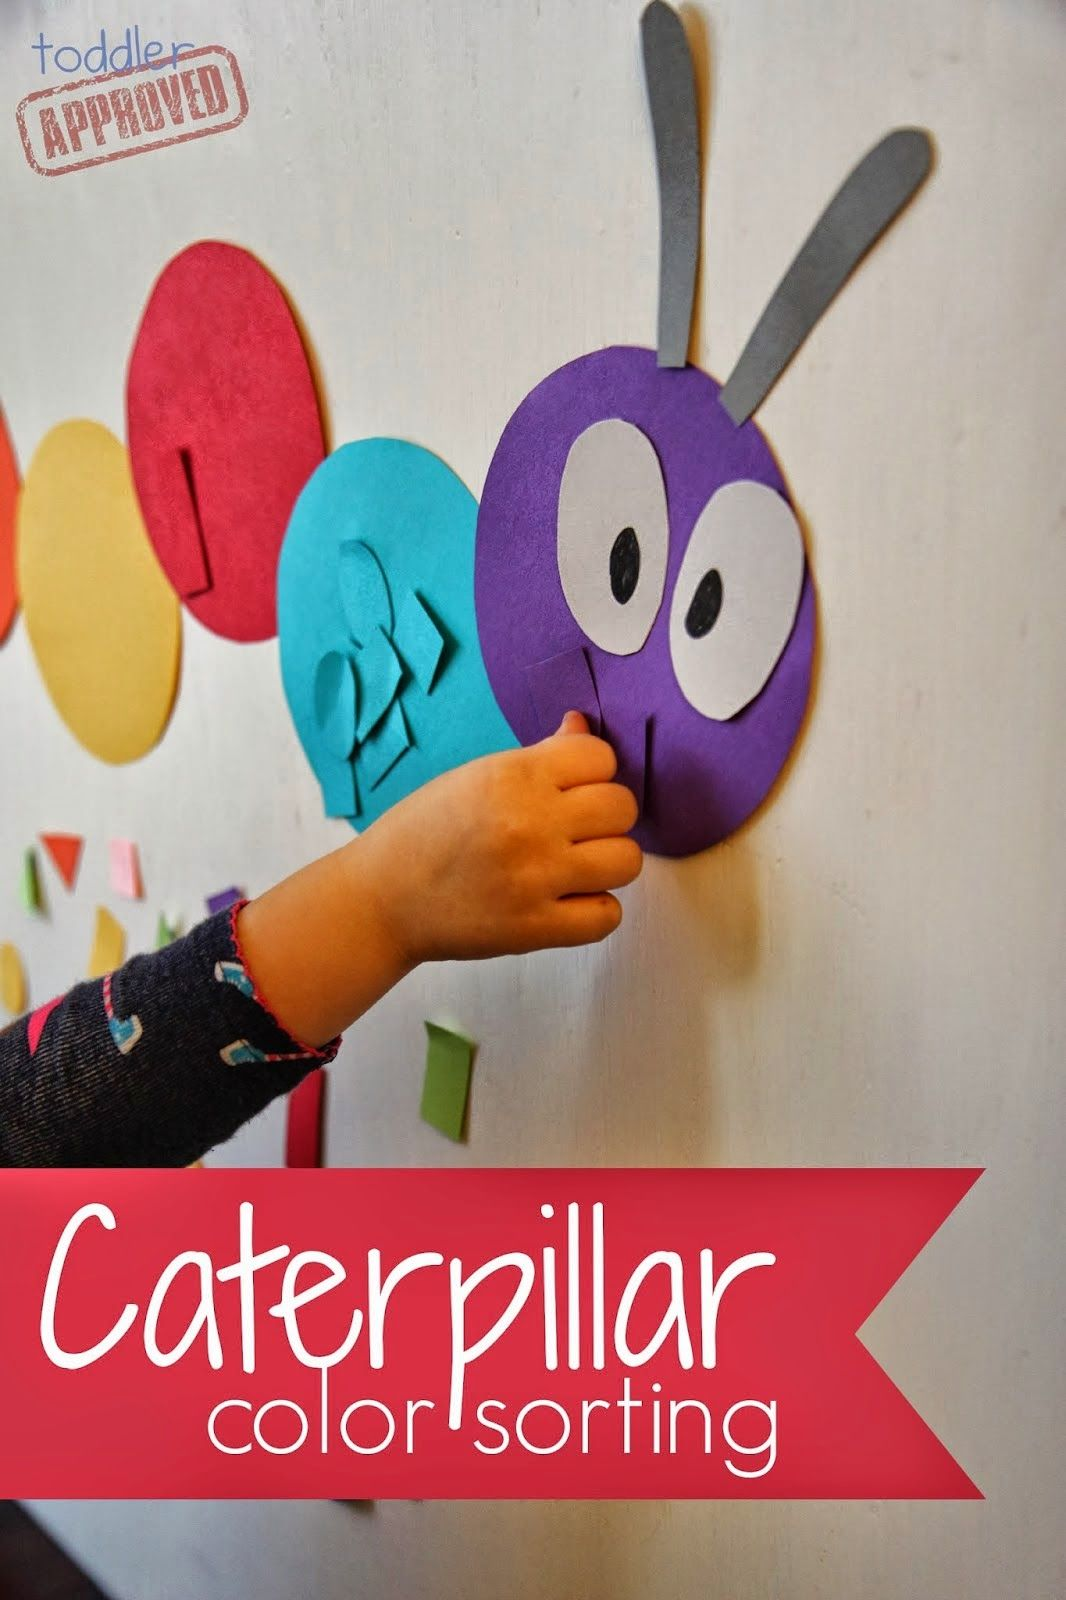 6 Eric Carle Books Amp Activities For Toddlers And